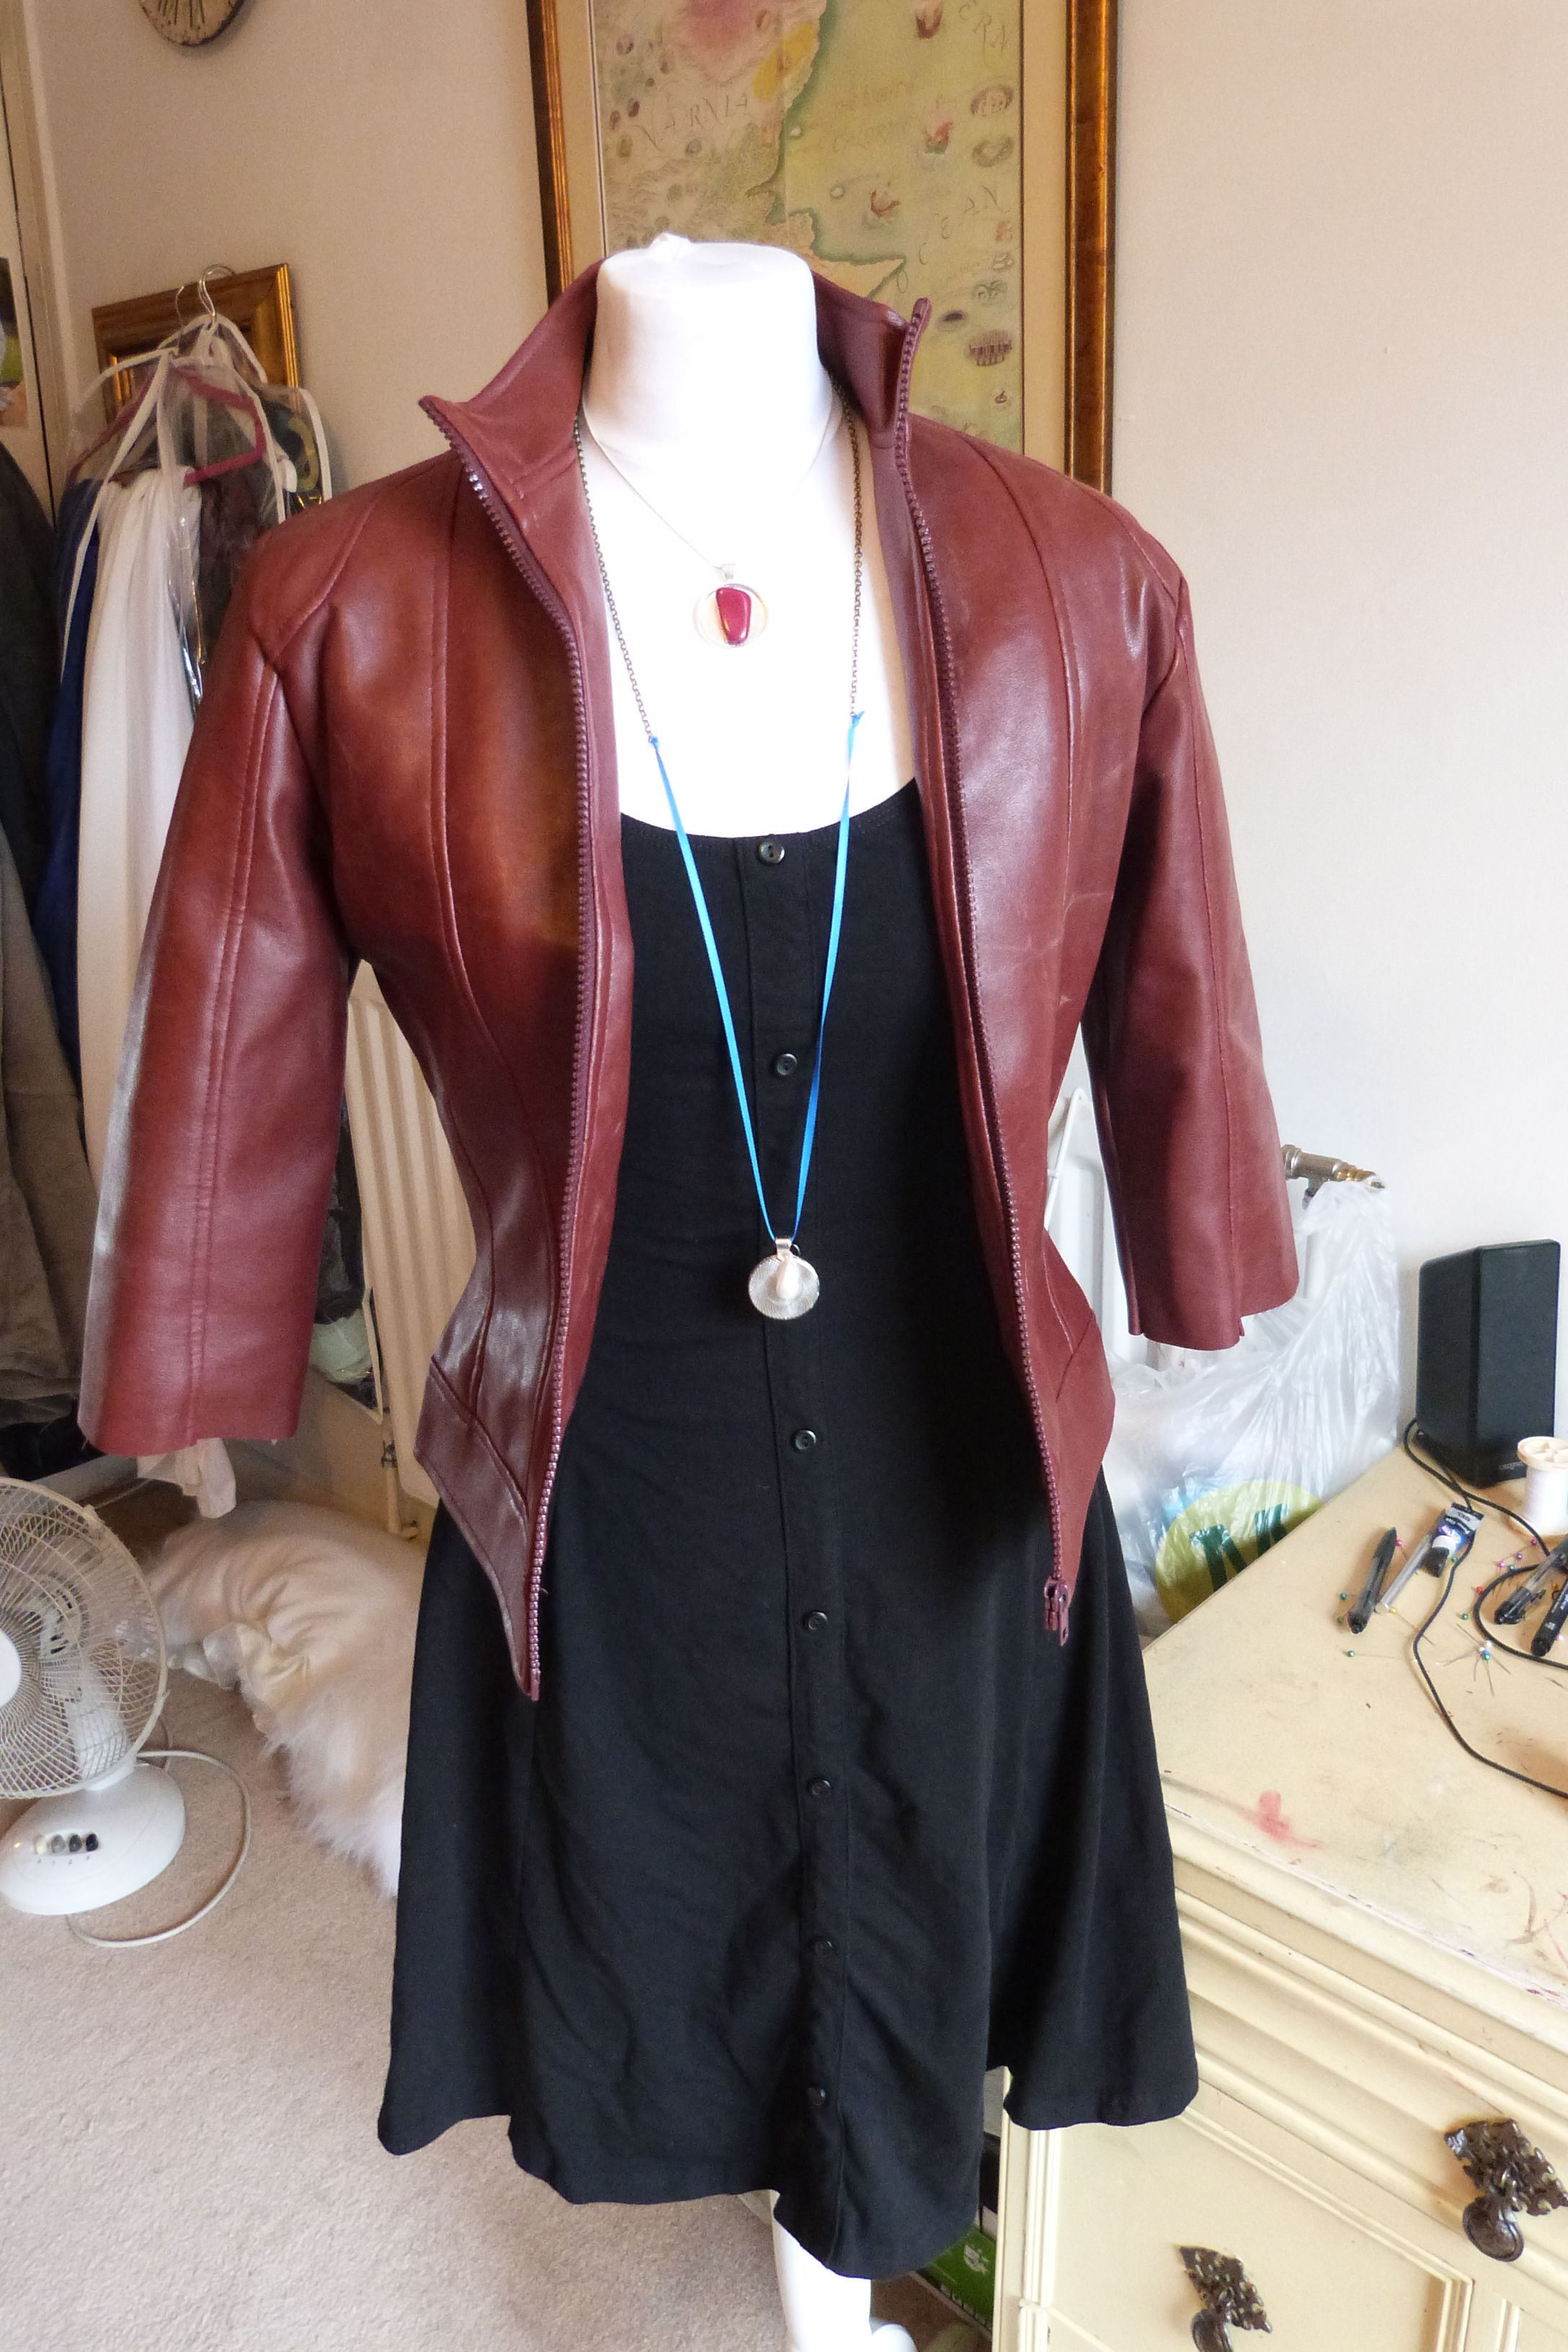 Wanda Maximoff Scarlet Witch Avengers Age Of Ultron Cosplay Costume